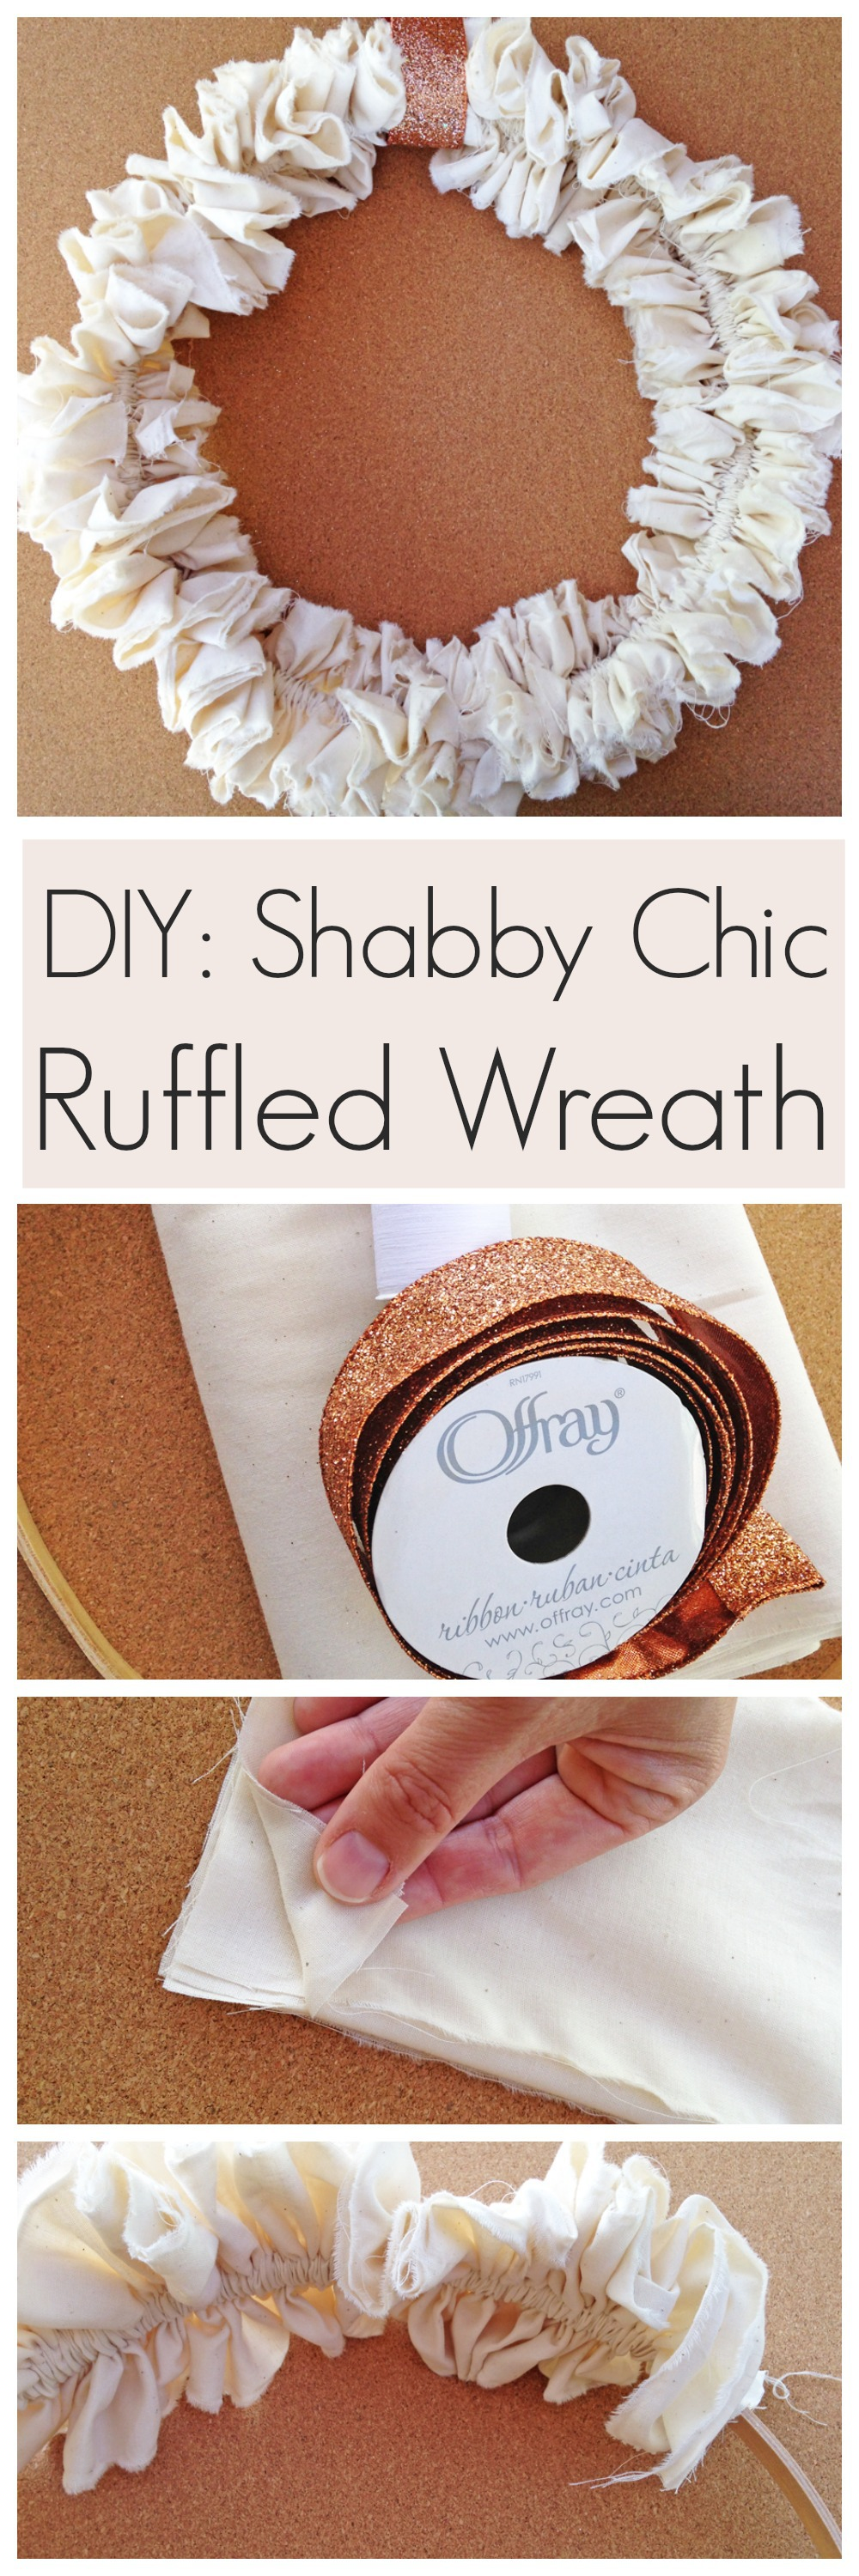 shabby chic ruffled wreath diy catch my party. Black Bedroom Furniture Sets. Home Design Ideas